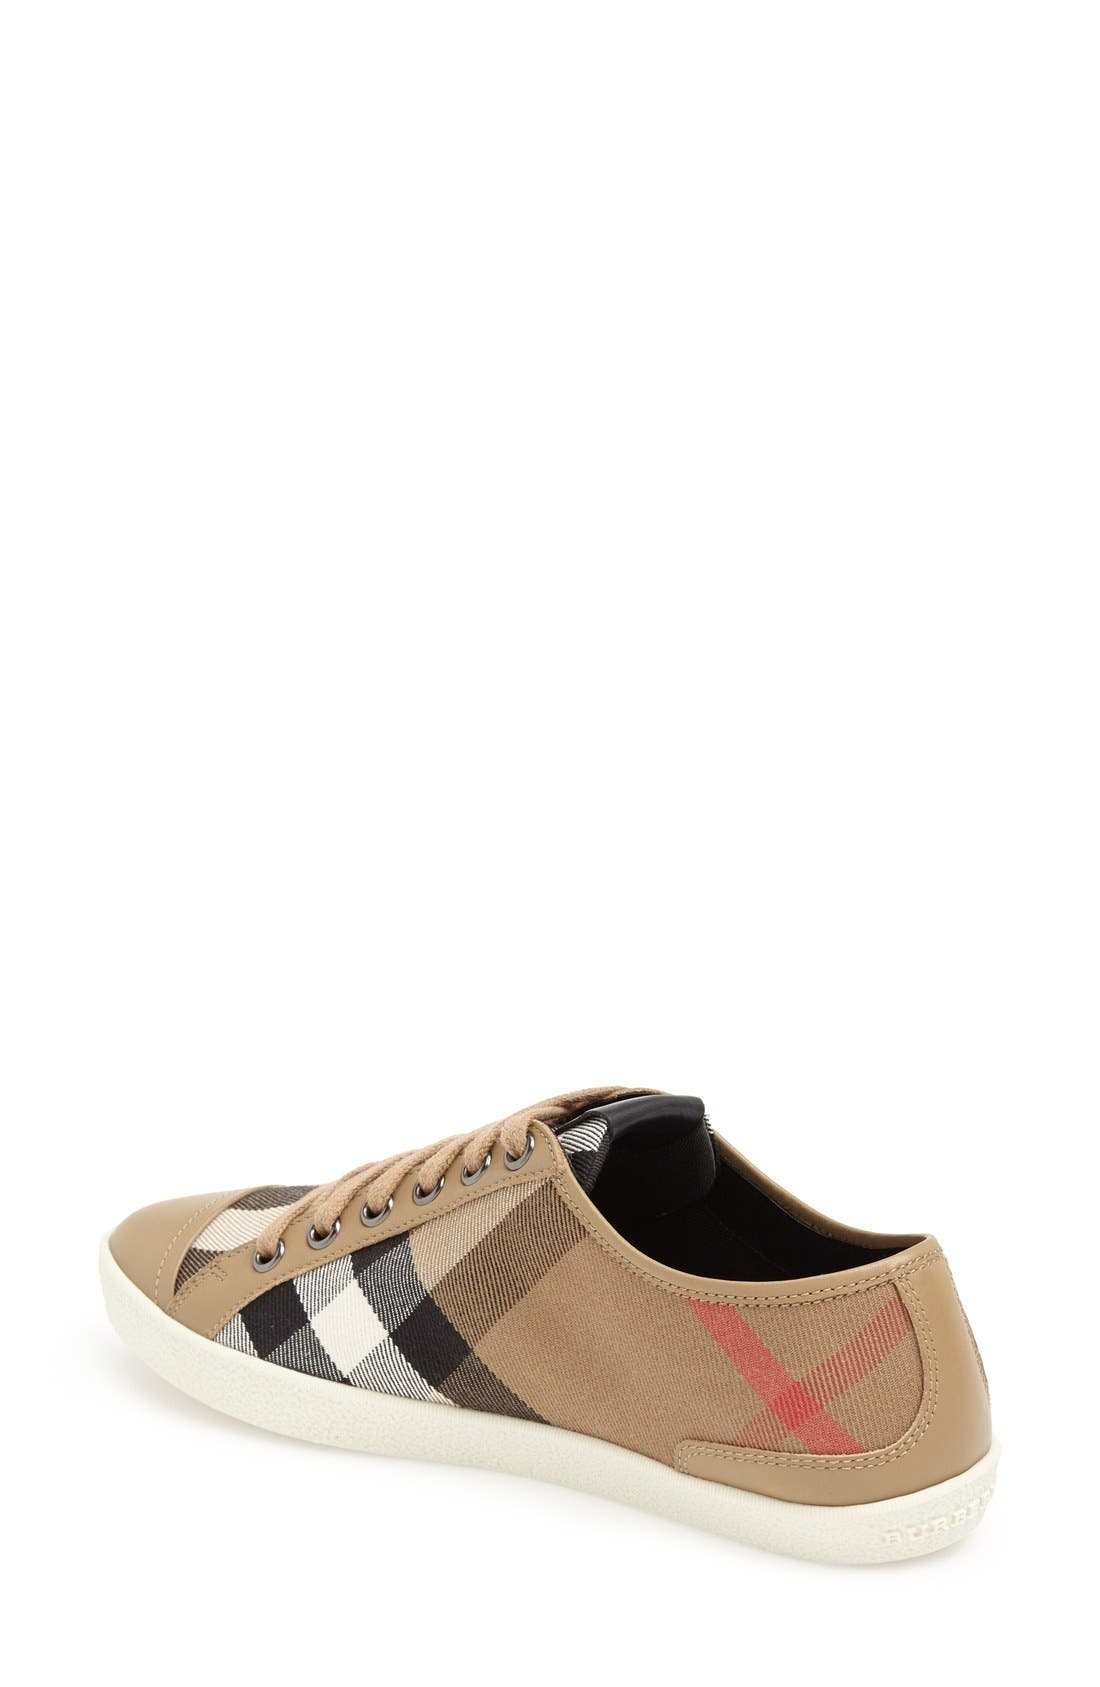 Alternate Image 2  - Burberry Check Print Sneaker (Women)